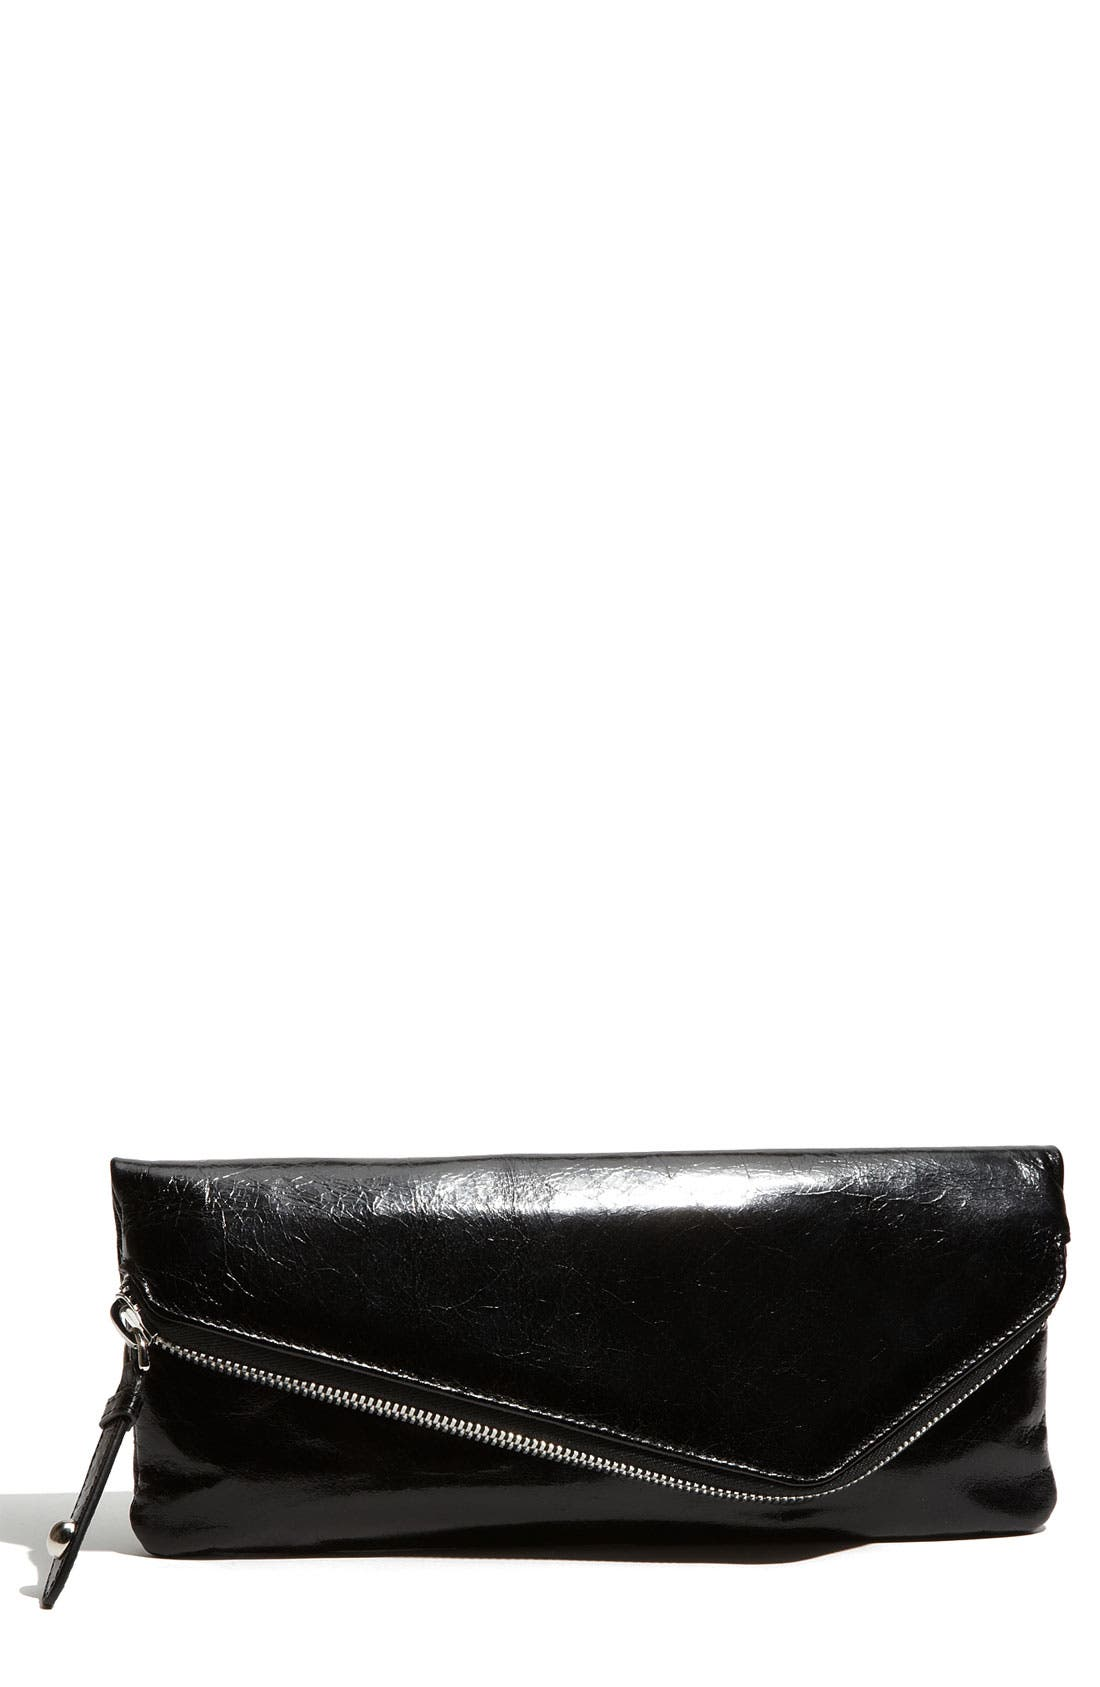 Main Image - Hobo 'Effe - Small' Glazed Leather Wallet